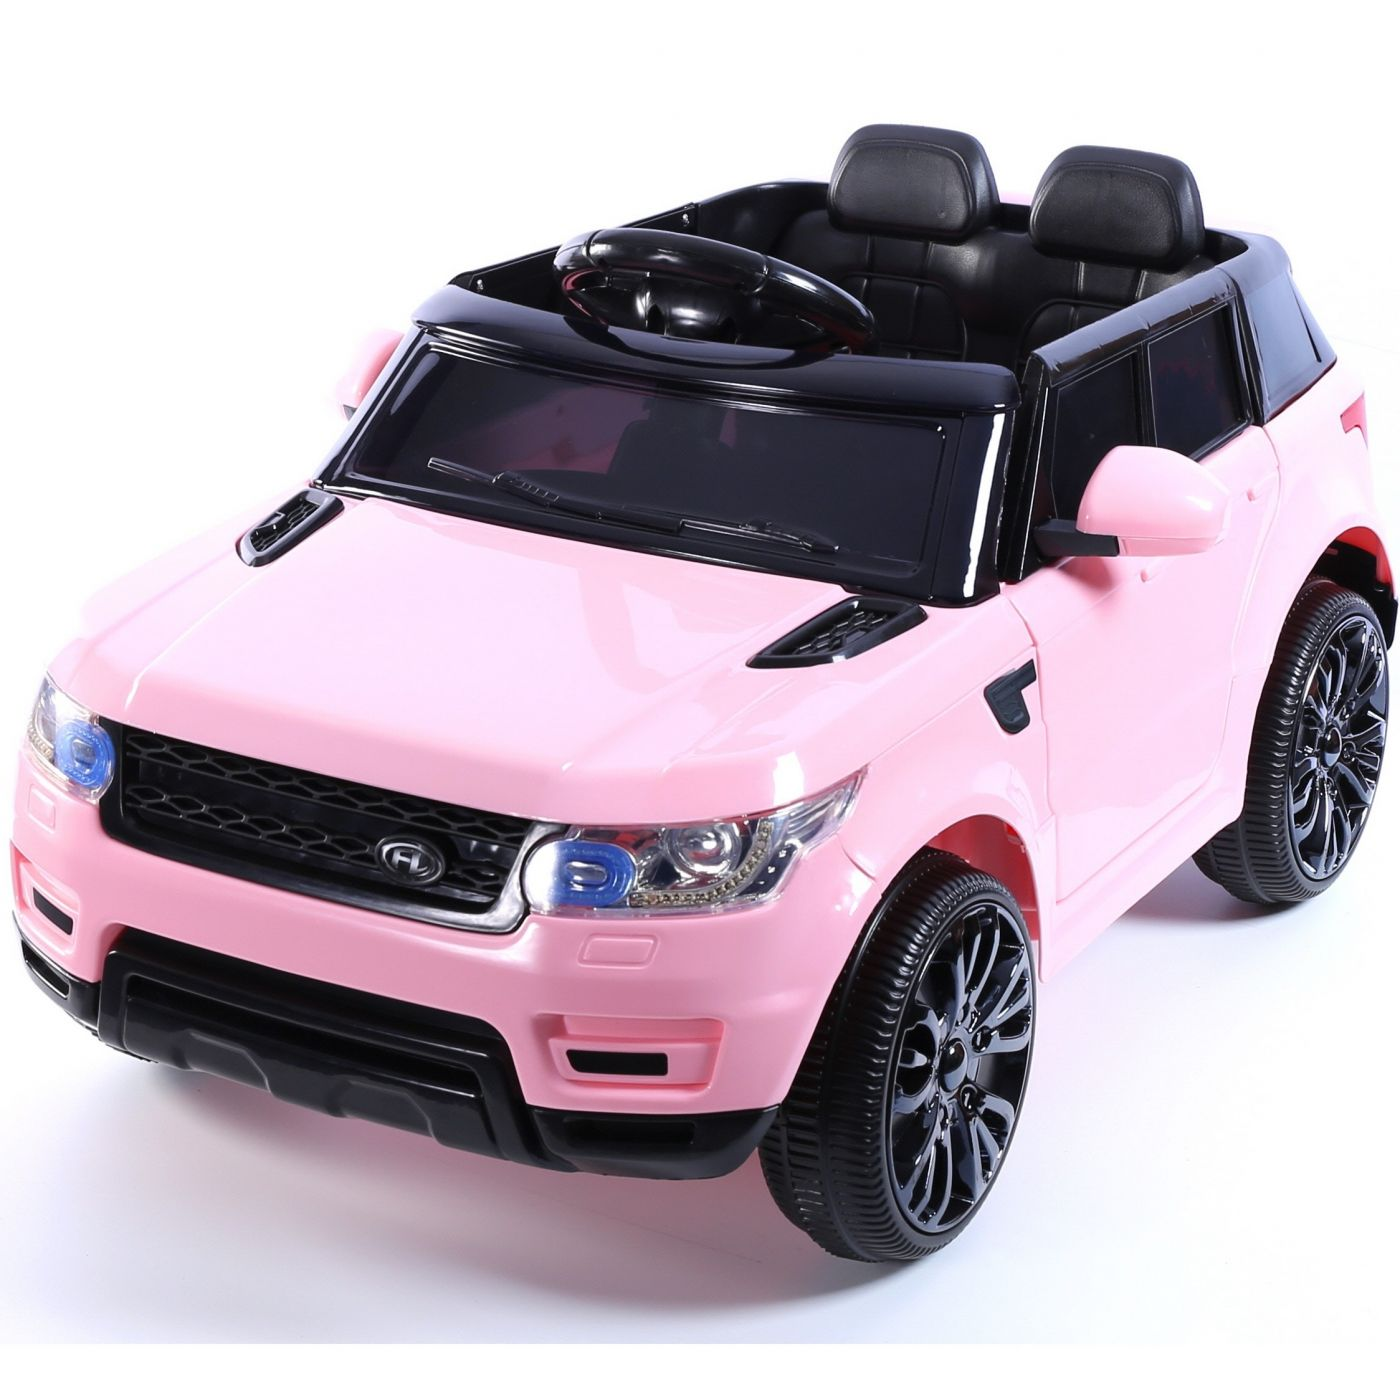 Mini Hse Range Rover Style 12v Childs Ride On Jeep Pink For Just